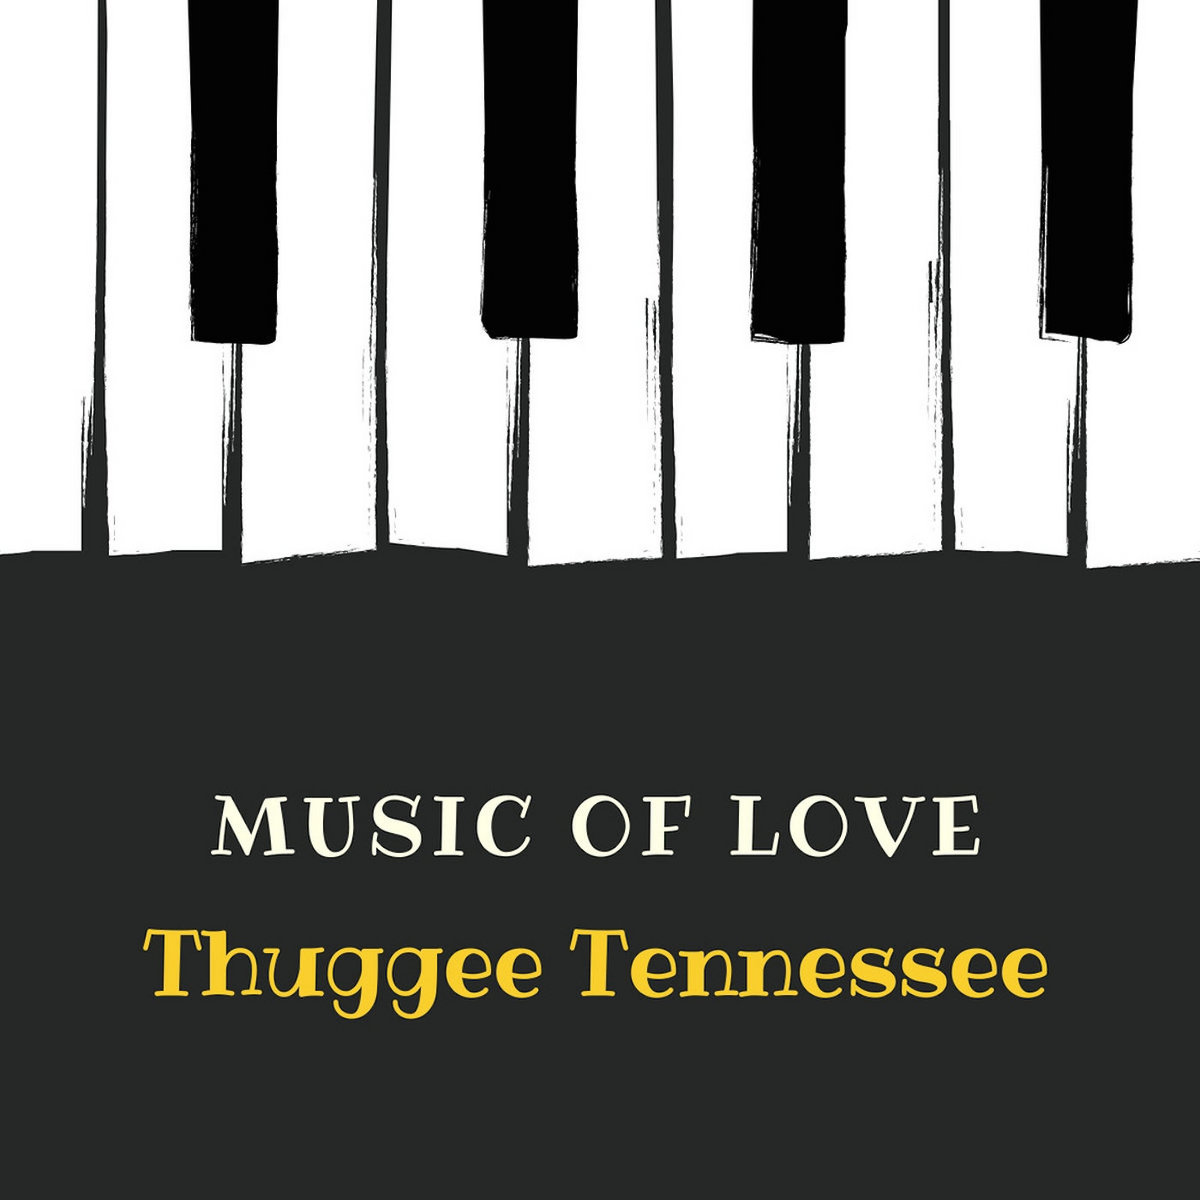 Music Of Love (single) by Thuggee Tennessee